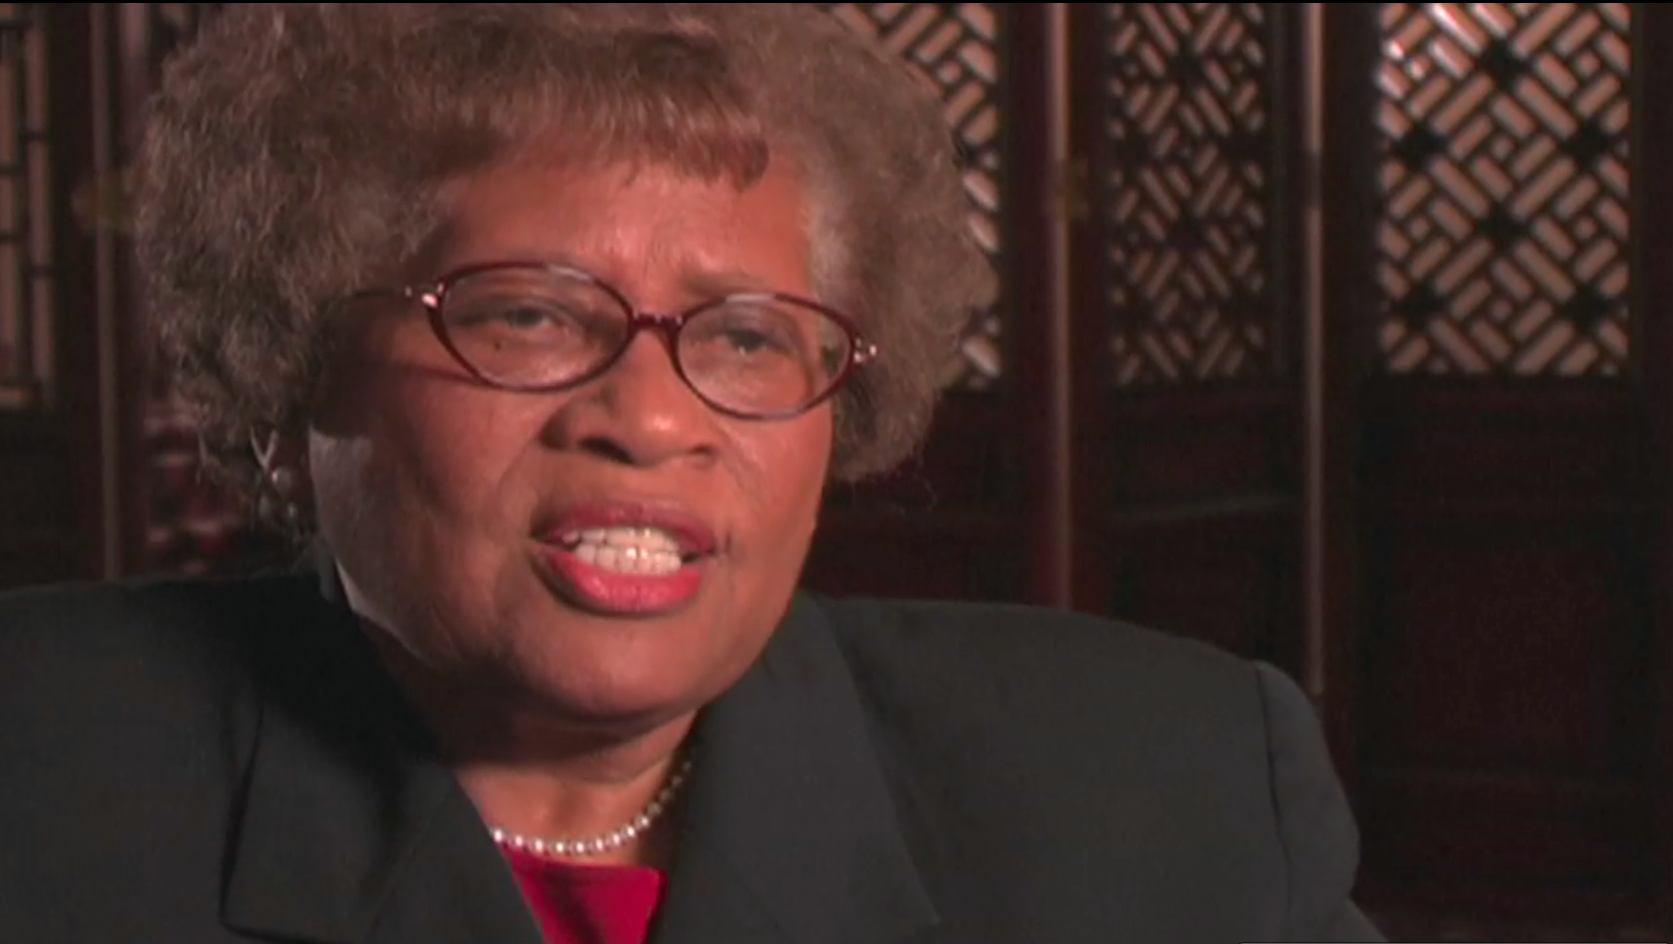 Dr. Joycelyn Elders    was the sixteenth Surgeon General of the United States, the first African American and only the second woman to head the U.S. Public Health Service. Long an outspoken advocate of public health, Elders was appointed Surgeon General by President Clinton in 1993. In 1994, Dr. Elders left office over her views on sex education, and in 1995 she returned to the University of Arkansas as a faculty researcher and professor at the Arkansas Children's Hospital. Now retired, she remains very active–and outspoken–in public health education.